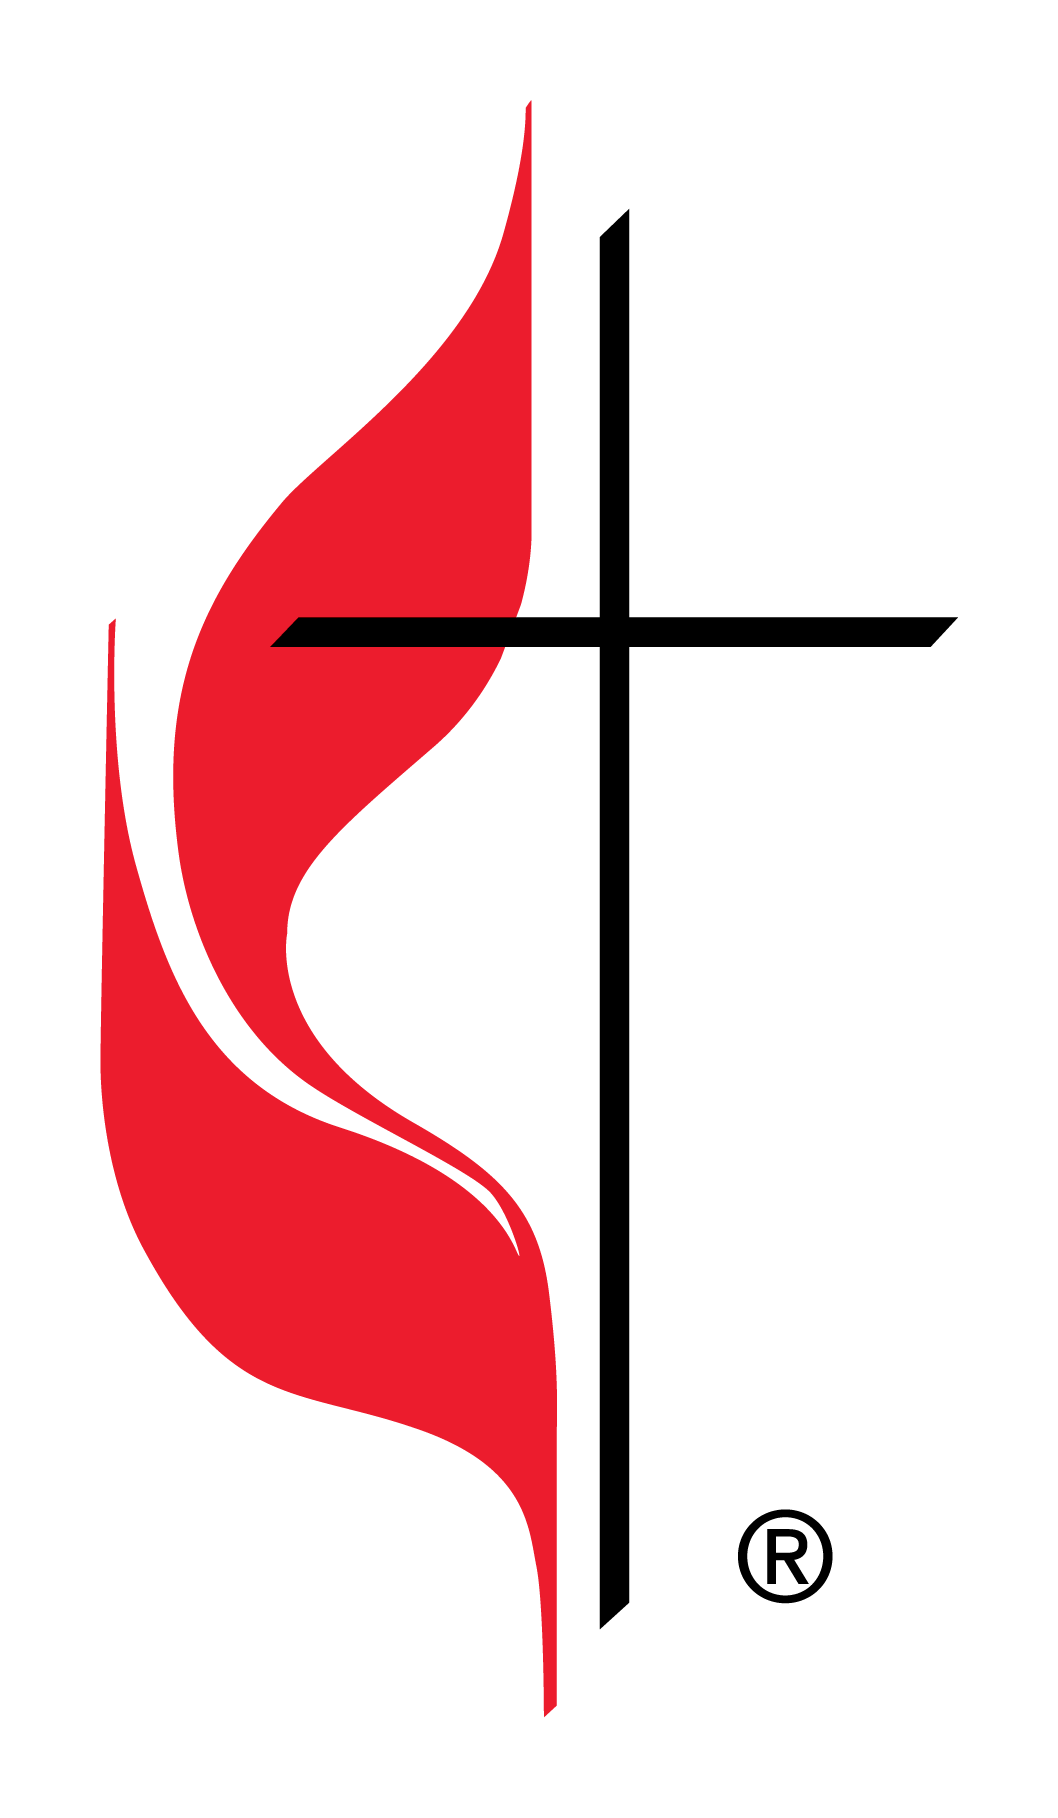 Official Cross and Flame Logo of The United Methodist Church.